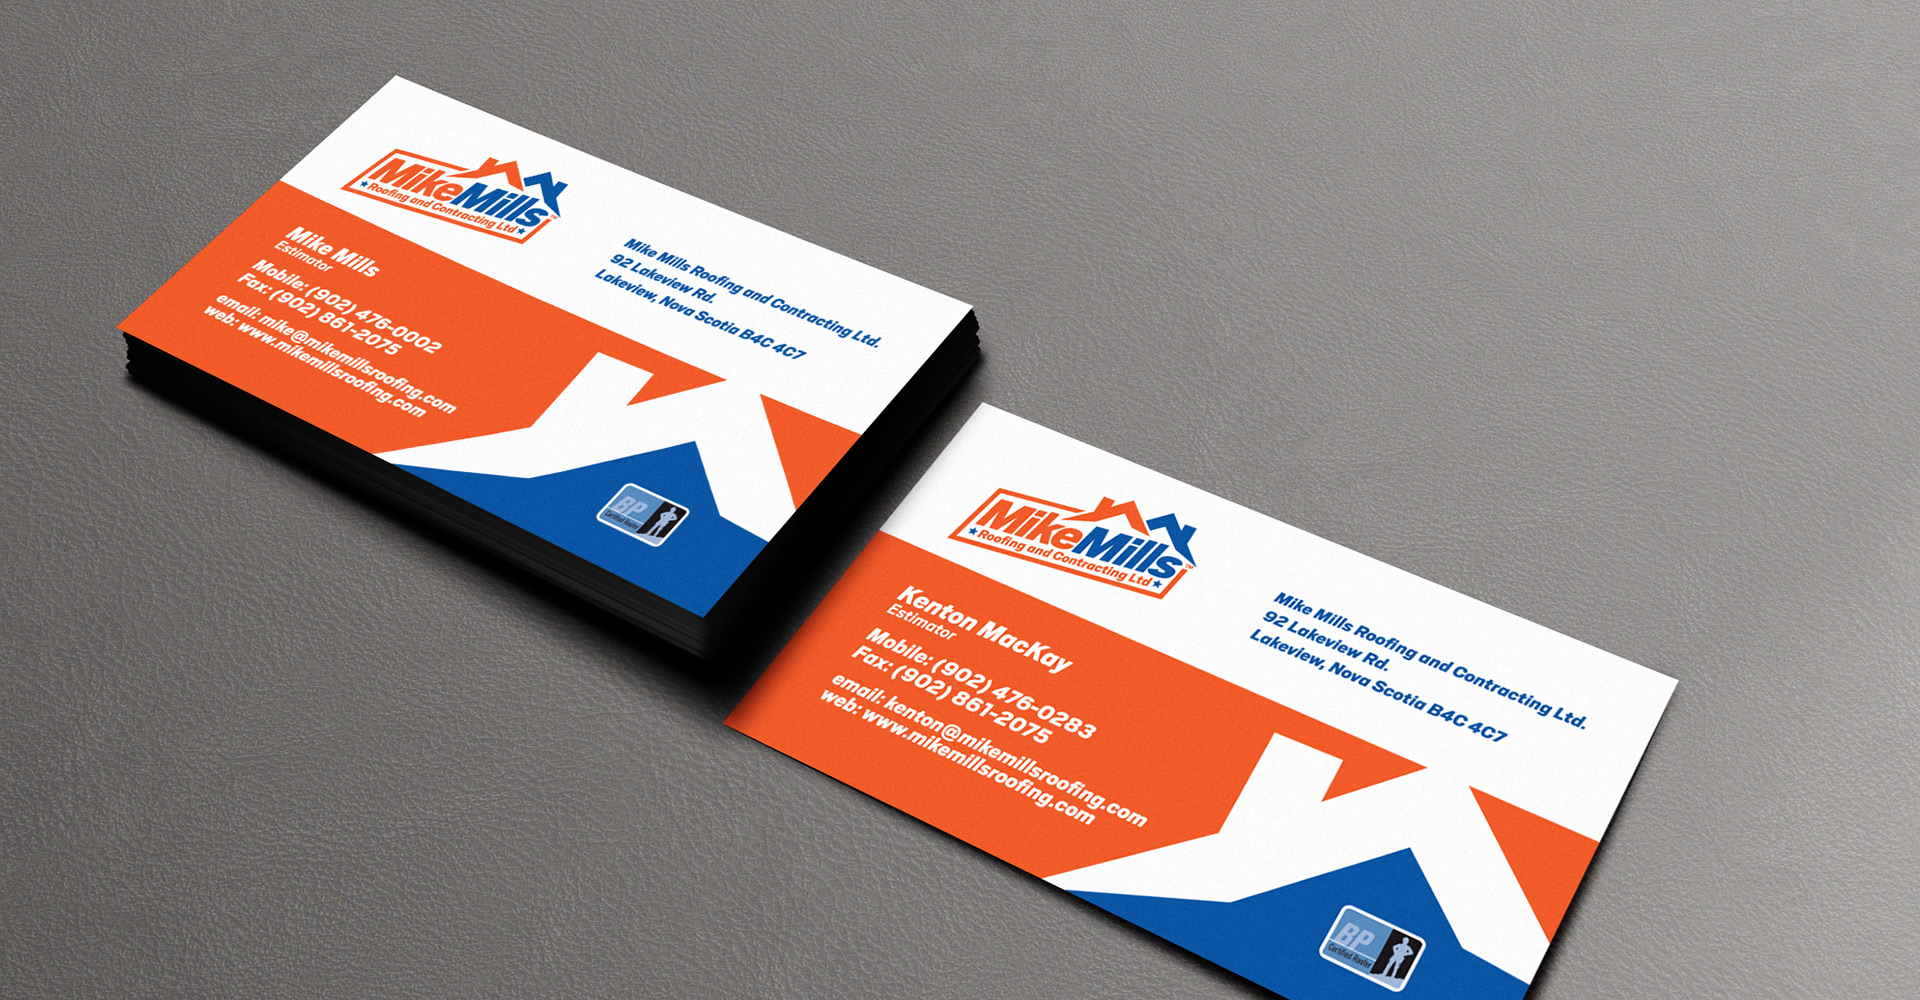 Mike Mills Roofing Graphic Design